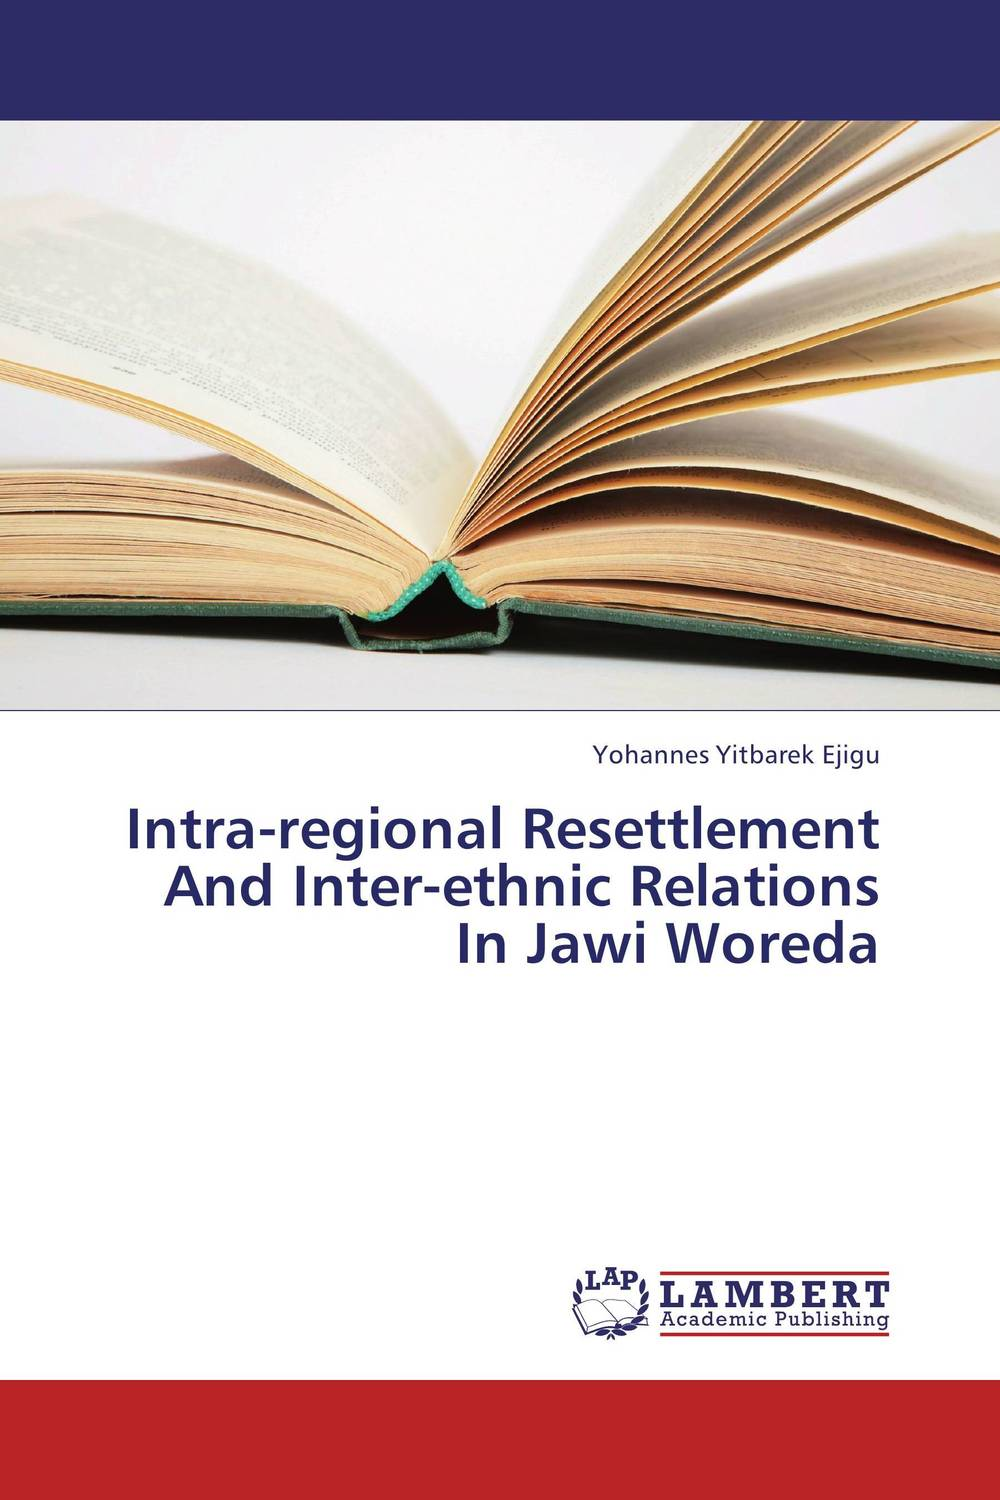 Фото Intra-regional Resettlement And Inter-ethnic Relations In Jawi Woreda ethnic interaction the case of oromo and amhara in western ethiopia